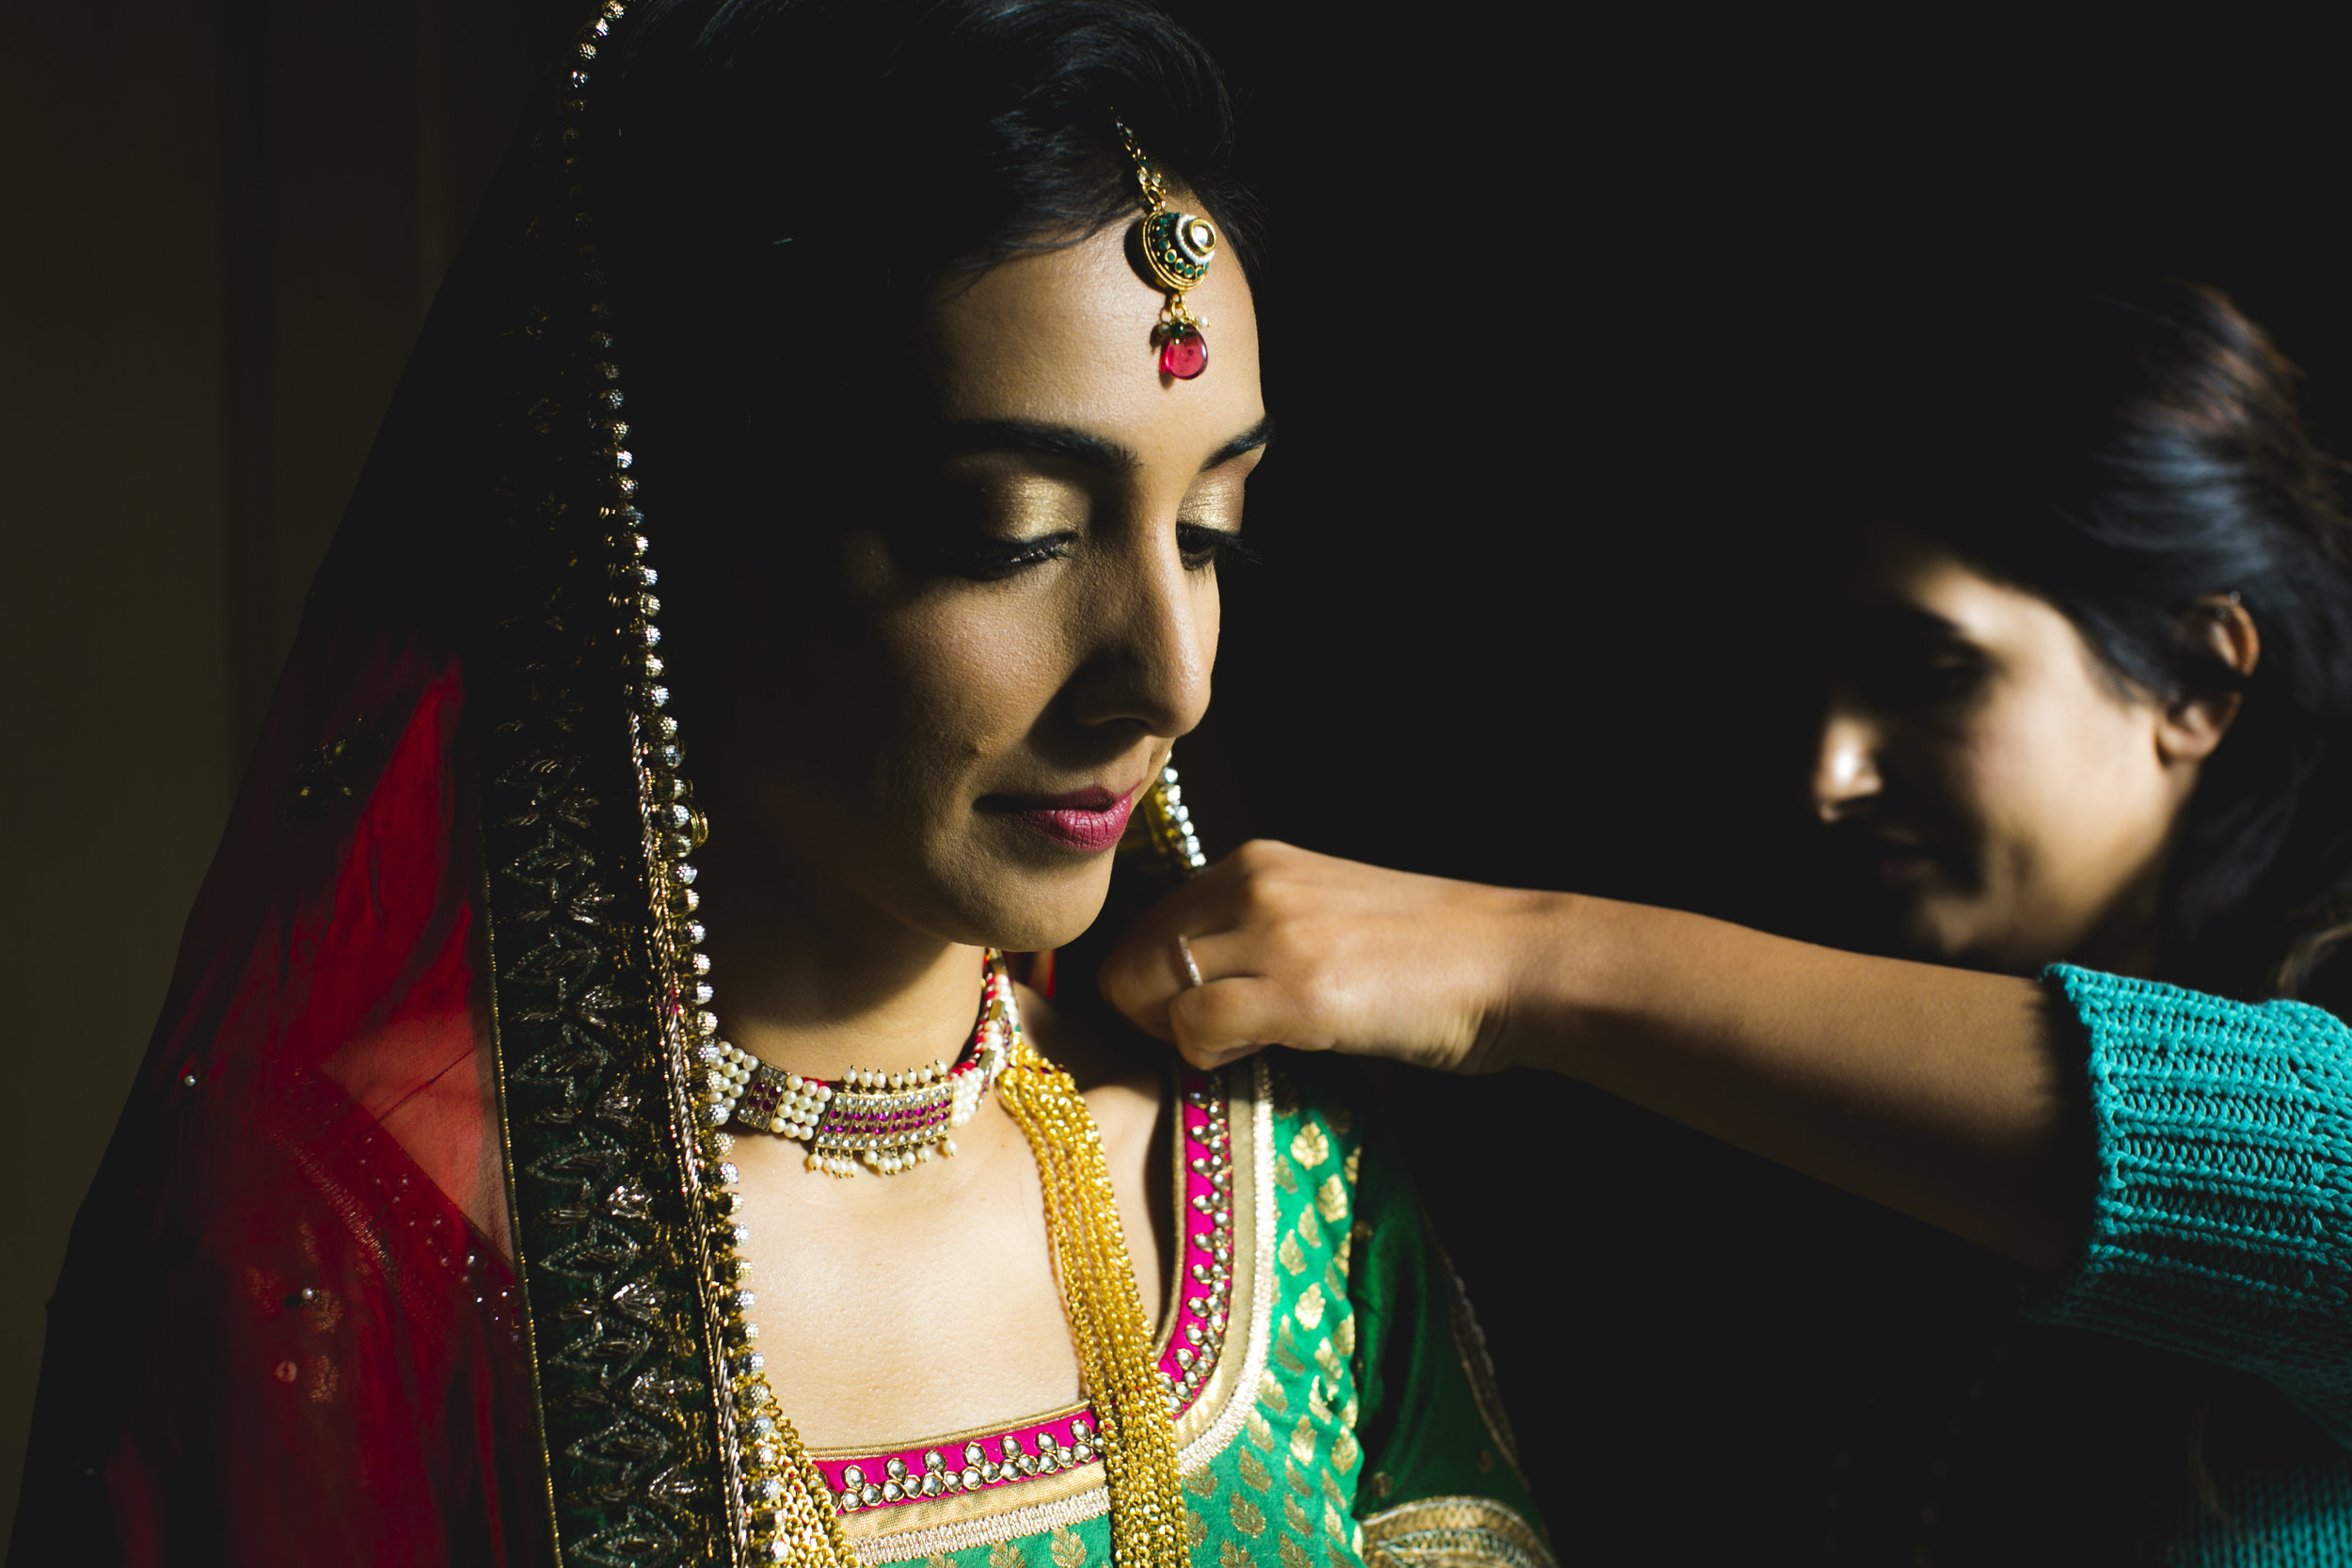 deepti_sripal_wedding_weekend_316.JPG